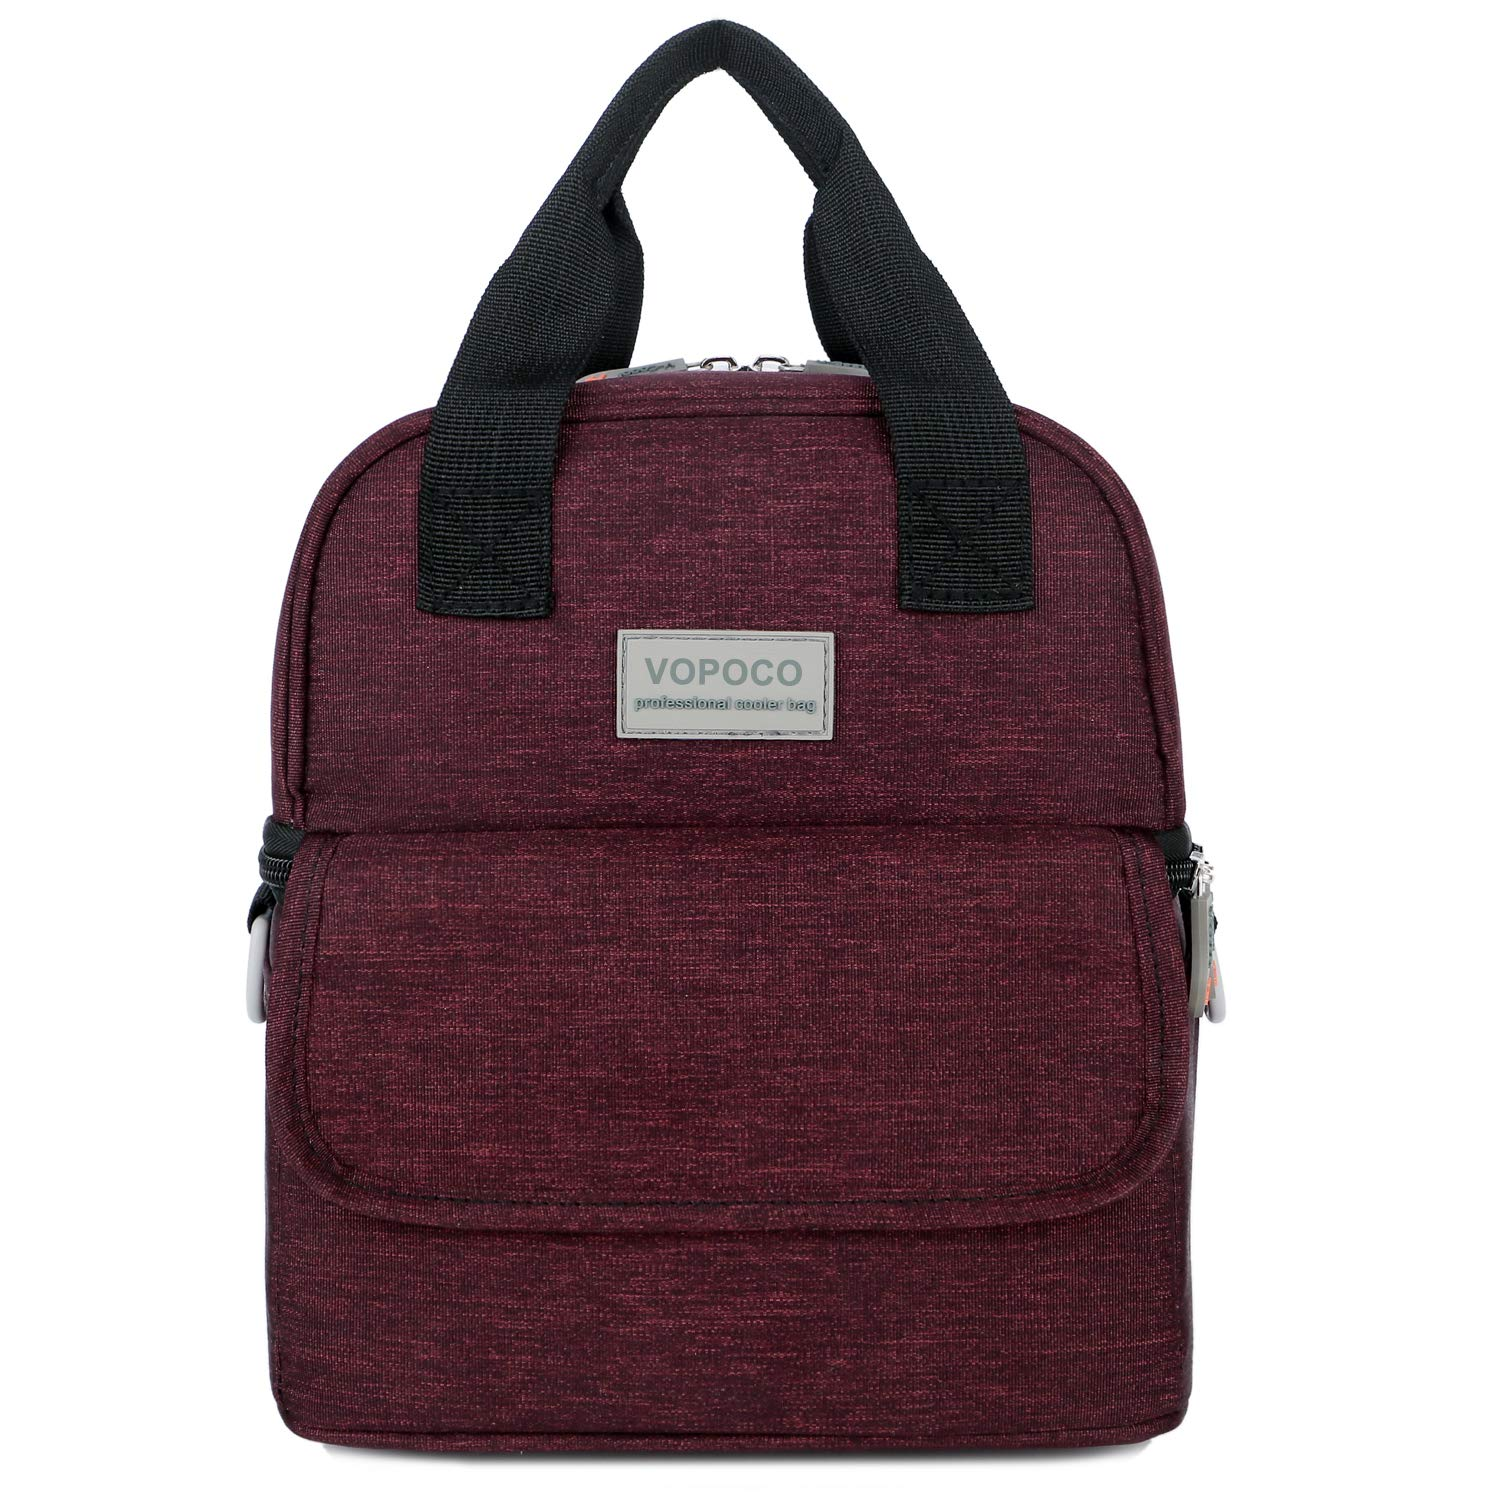 VOPOCO Breast Pump Bag Backpack,Two Layers of Dry Wet Separation Breast Feeding Bag Waterproof with Insulated Pockets to Keep Nutrients for Baby Breast Milk Baby Bottle Cooler Bag for Mom (Wine Red)